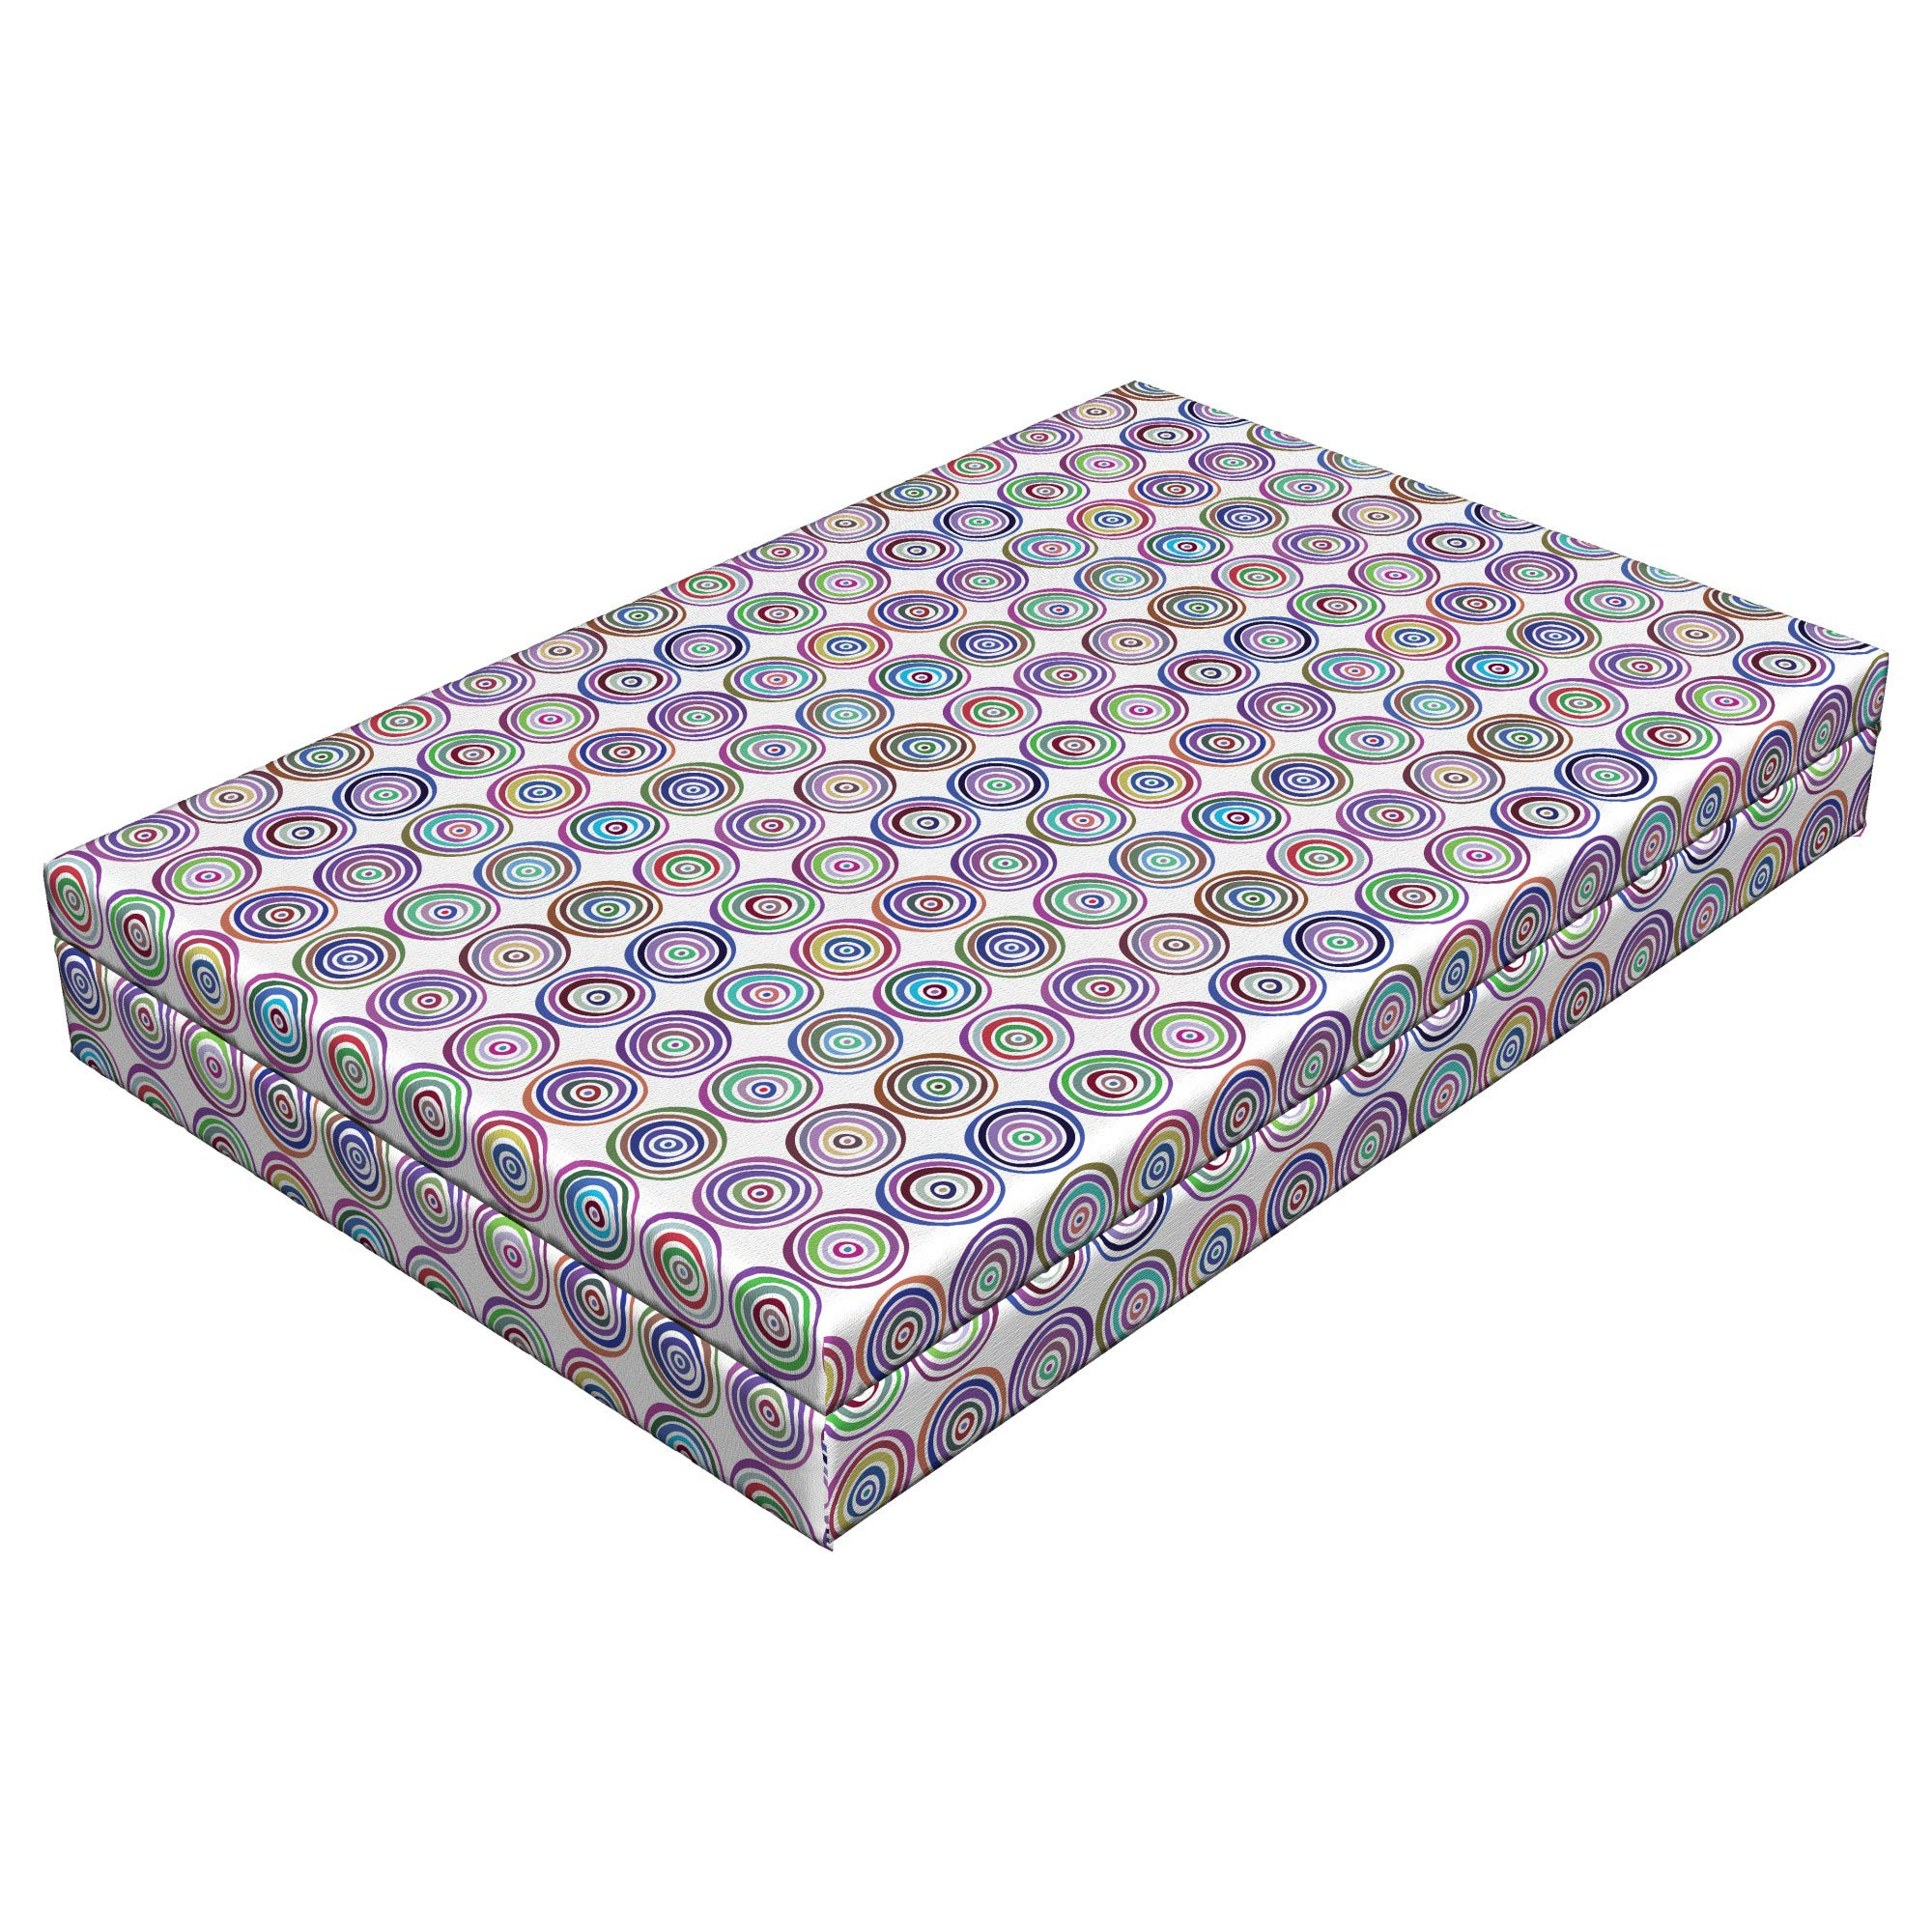 Lunarable Retro Modern Dog Bed, Optical Illusion Themed Hypnotic Bull's Eye Design Pastel Colored Circles, Durable Washable Mat with Decorative Fabric Cover, 48'' x 32'' x 6'', Multicolor